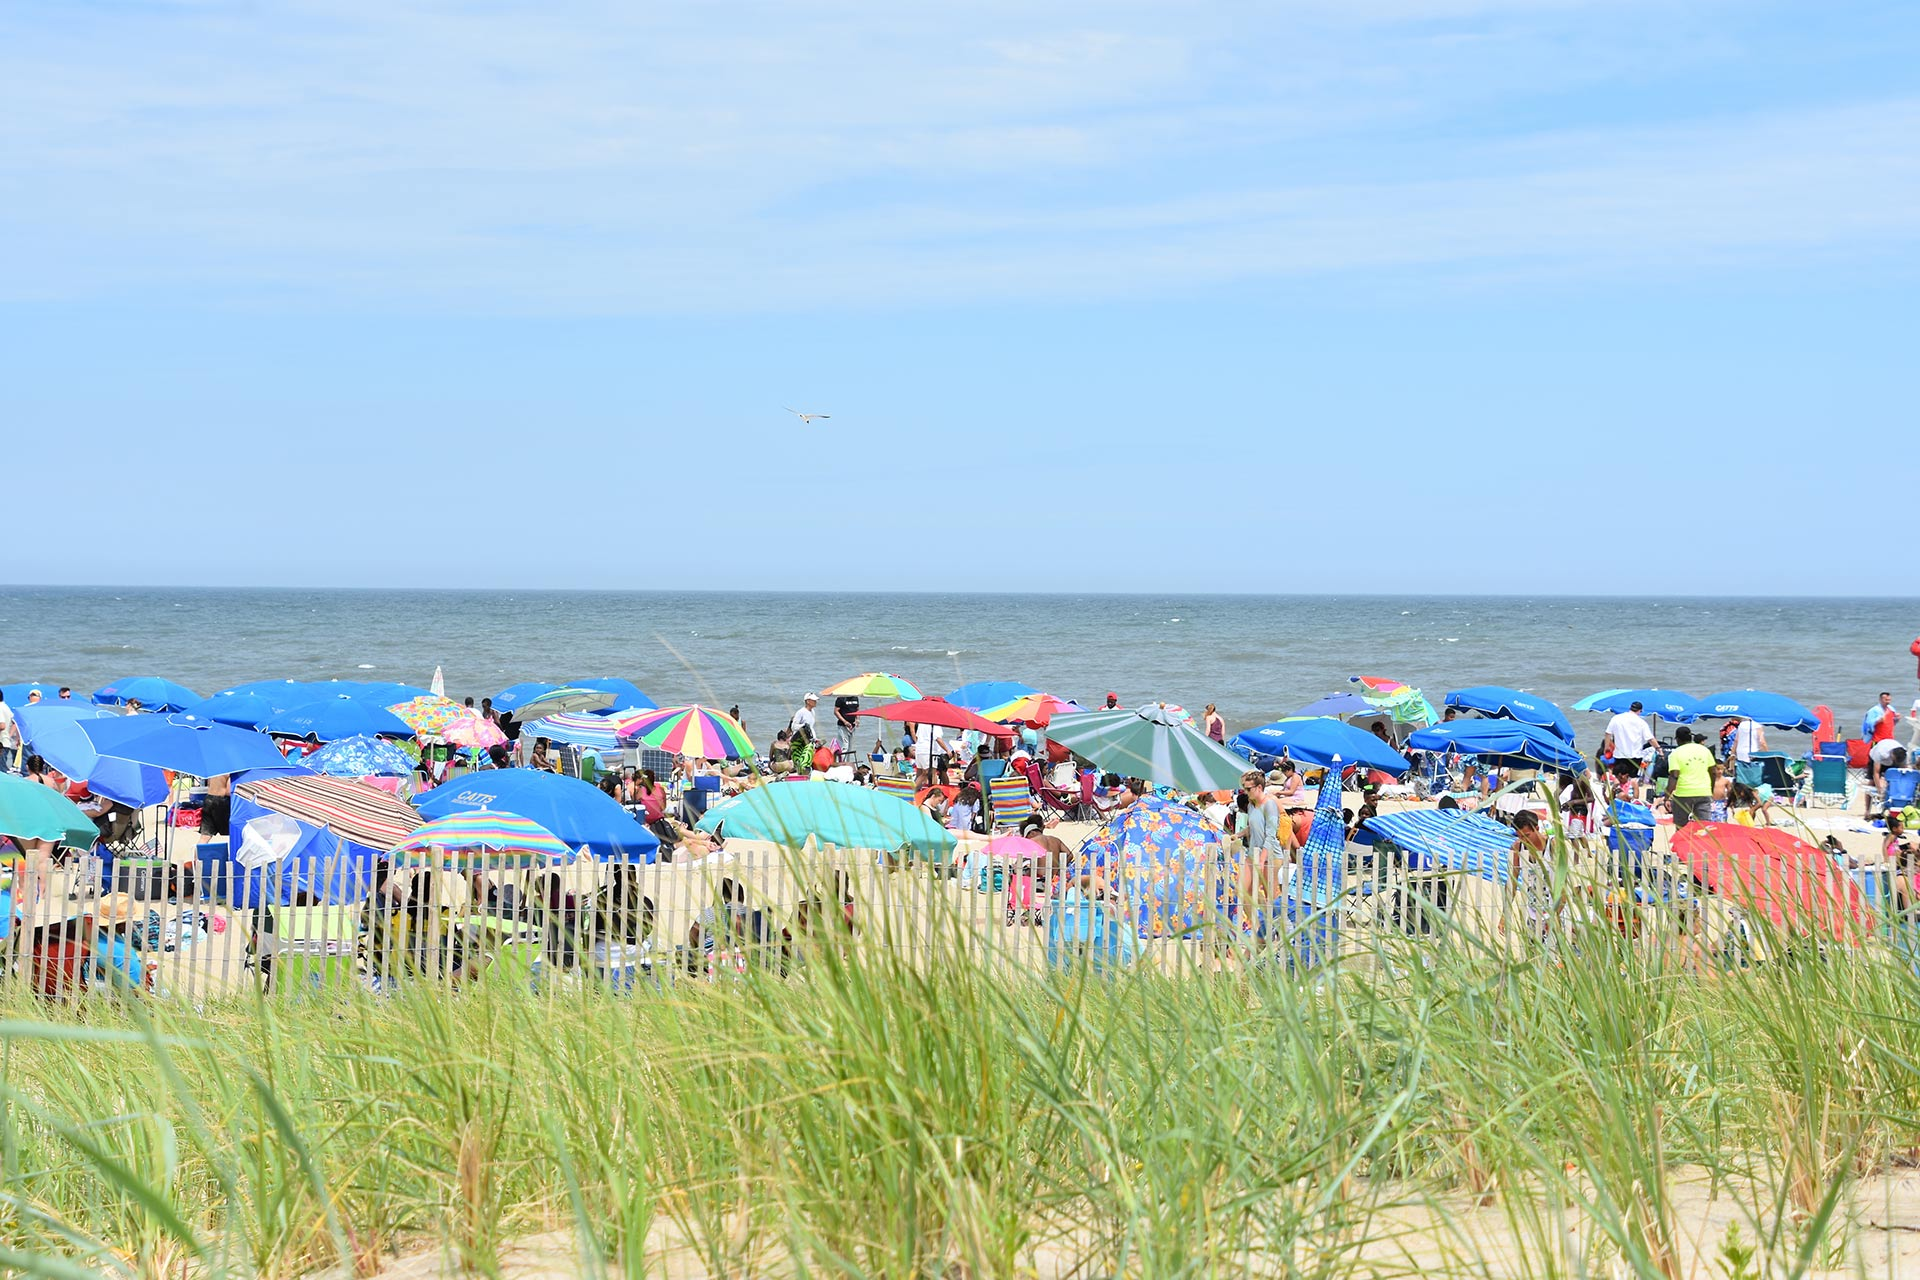 Rehoboth Beach, Delaware; Photo Courtesy of Ritu Manoj Jethani/Shutterstock.com